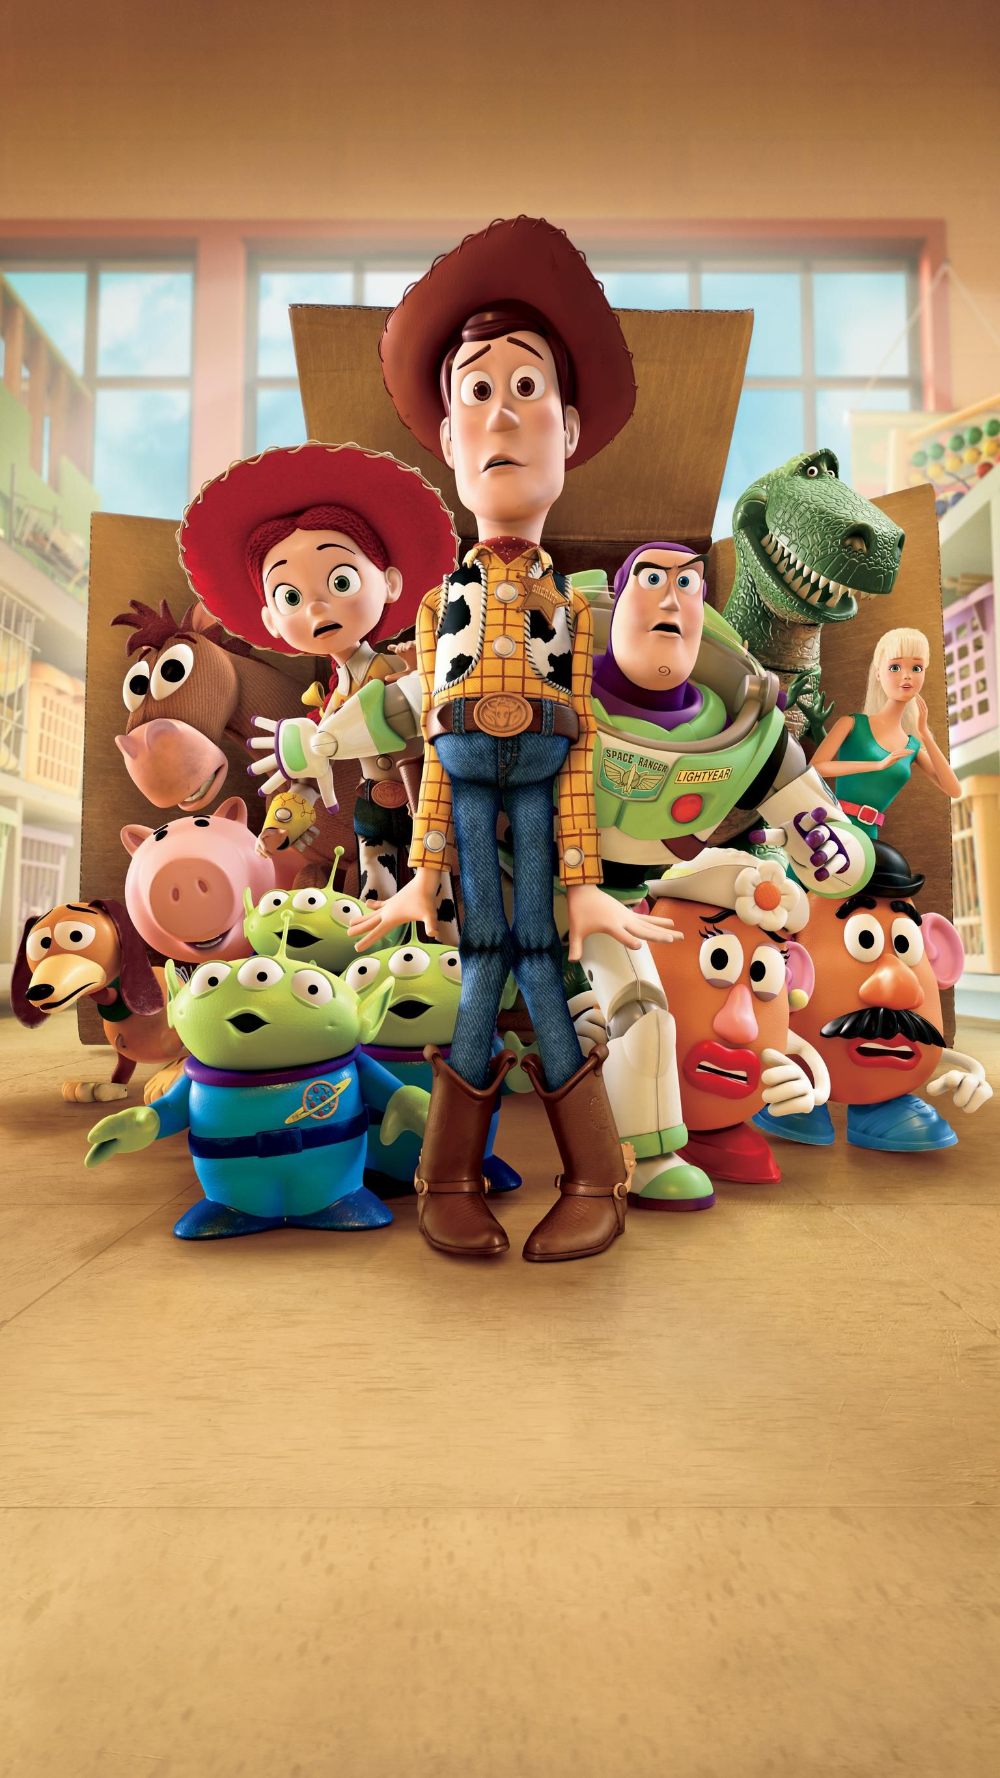 Iphone Wallpapers Hd From Moviemania Io Free Smartphone Wallpaper Cute Disney Wallpaper Toy Story Movie Toy Story 3